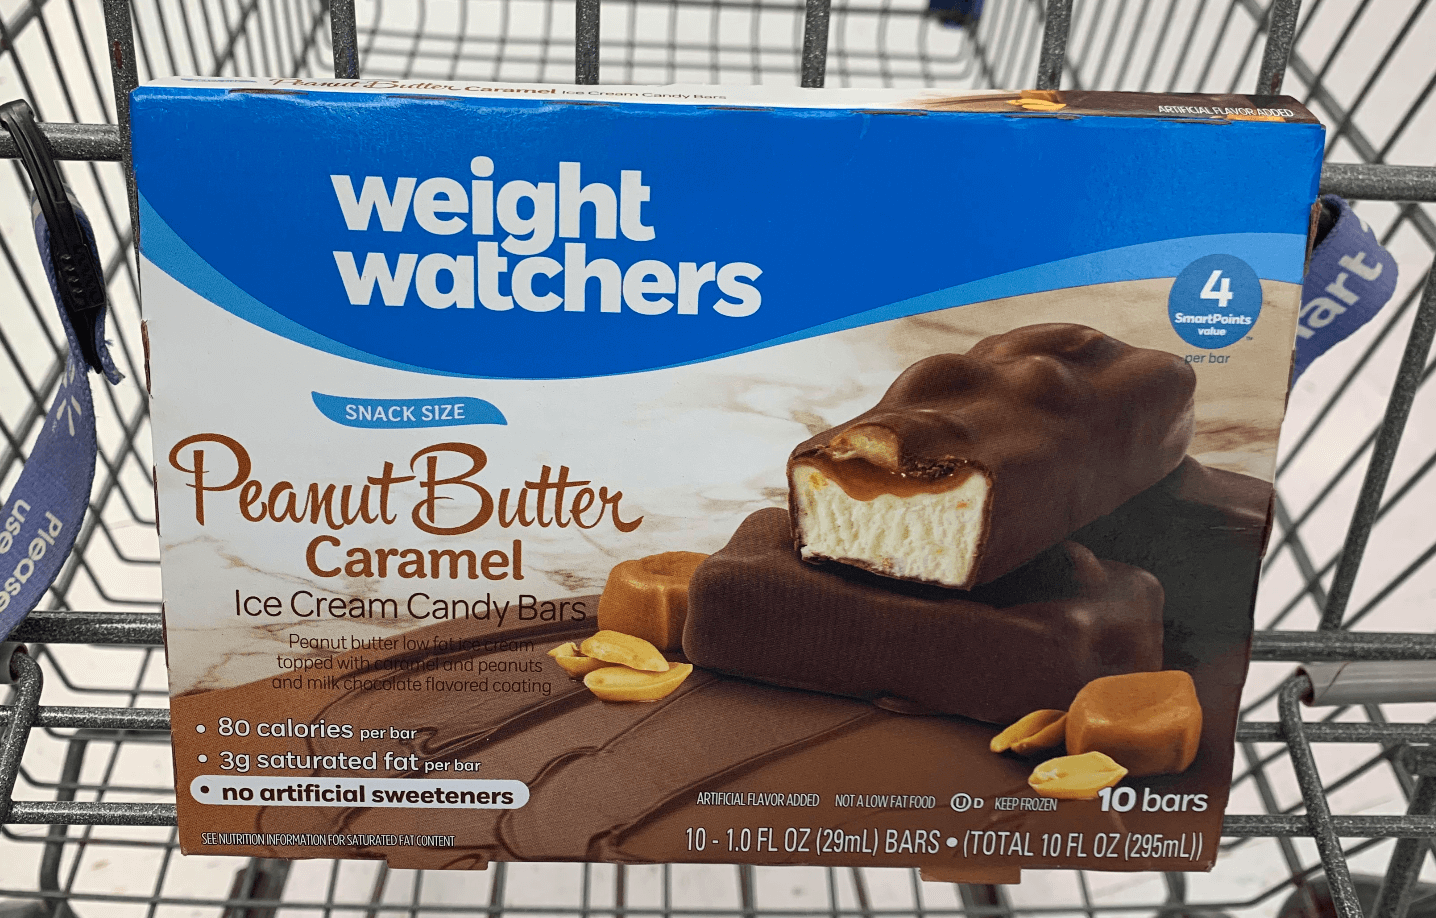 image regarding Weight Watchers Printable Coupons referred to as $1.75 within Clean Excess weight Watchers Discount codes DealsLiving Prosperous With